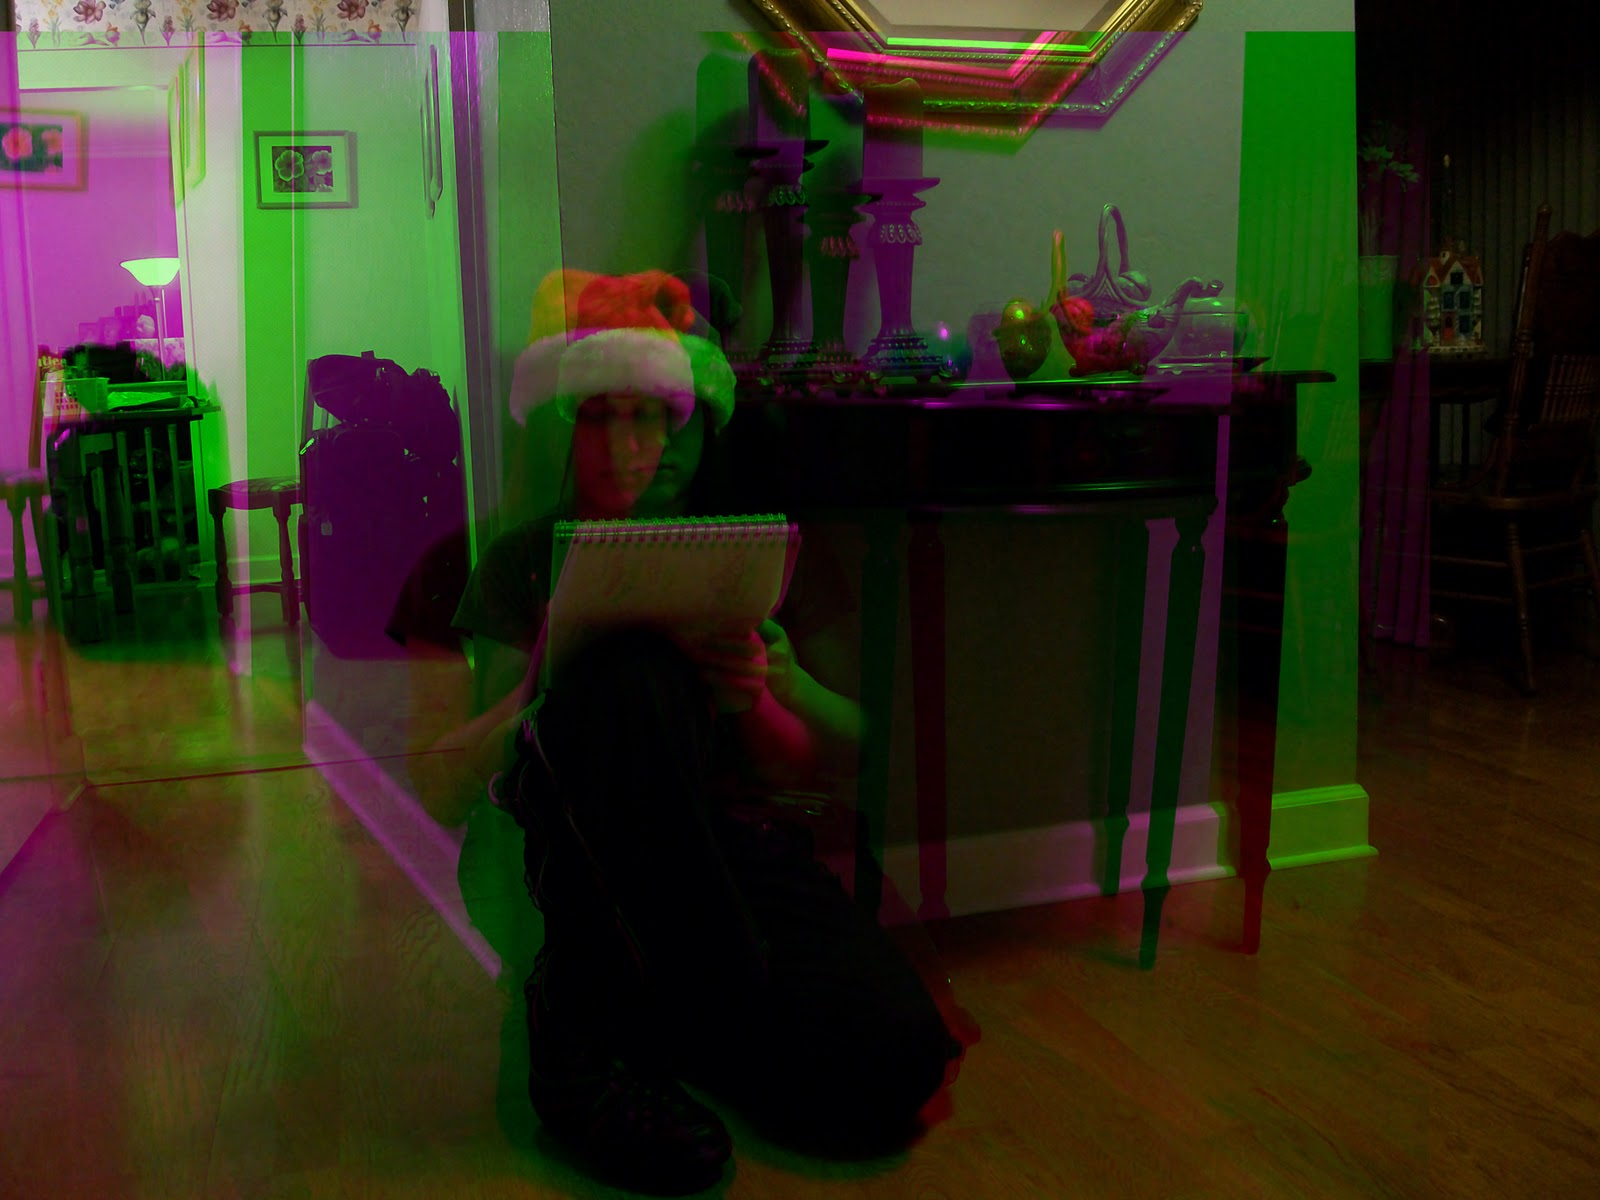 how to create stereoscopic images from one photo